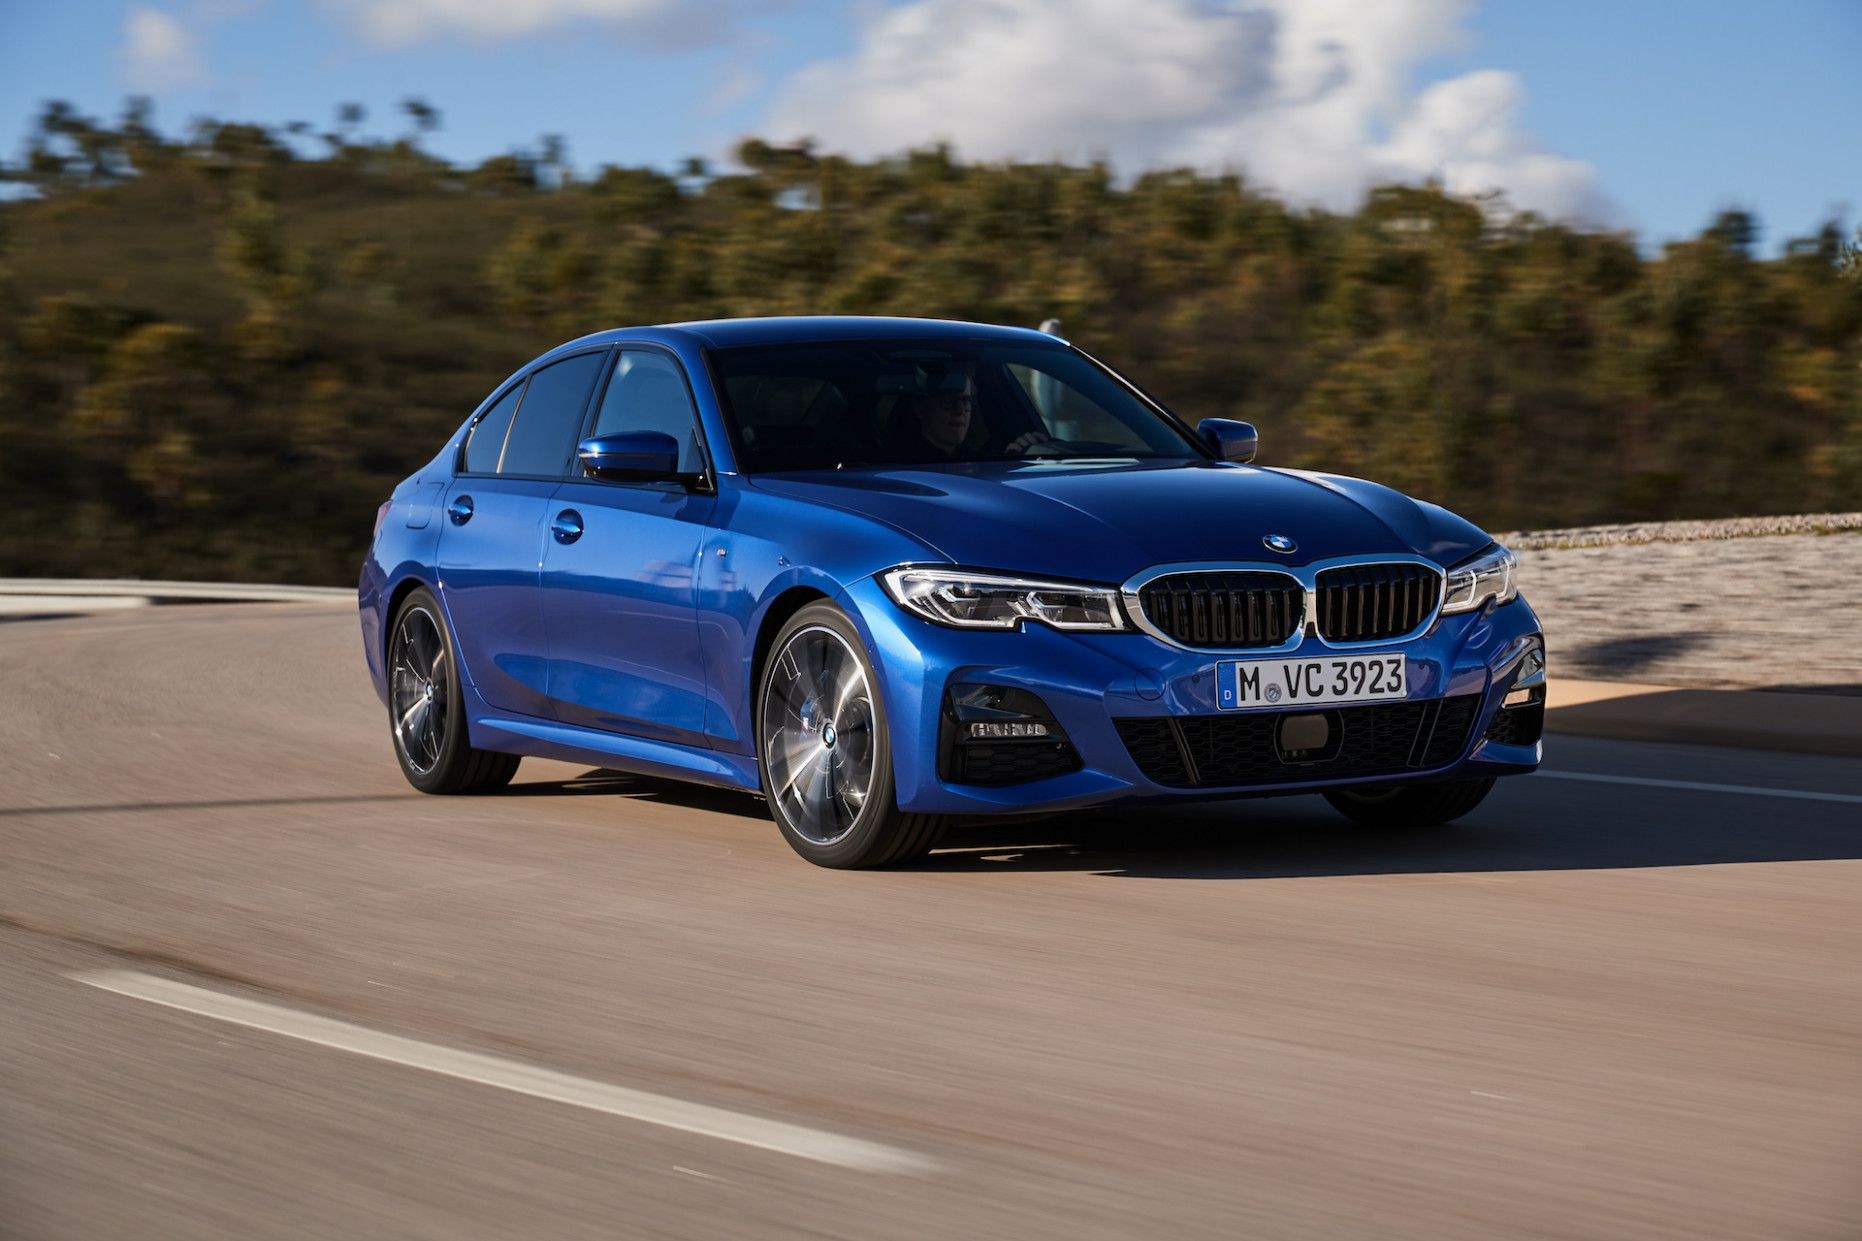 6 Wallpaper Bmw M340i 2020 In 2020 Bmw Car Car Review